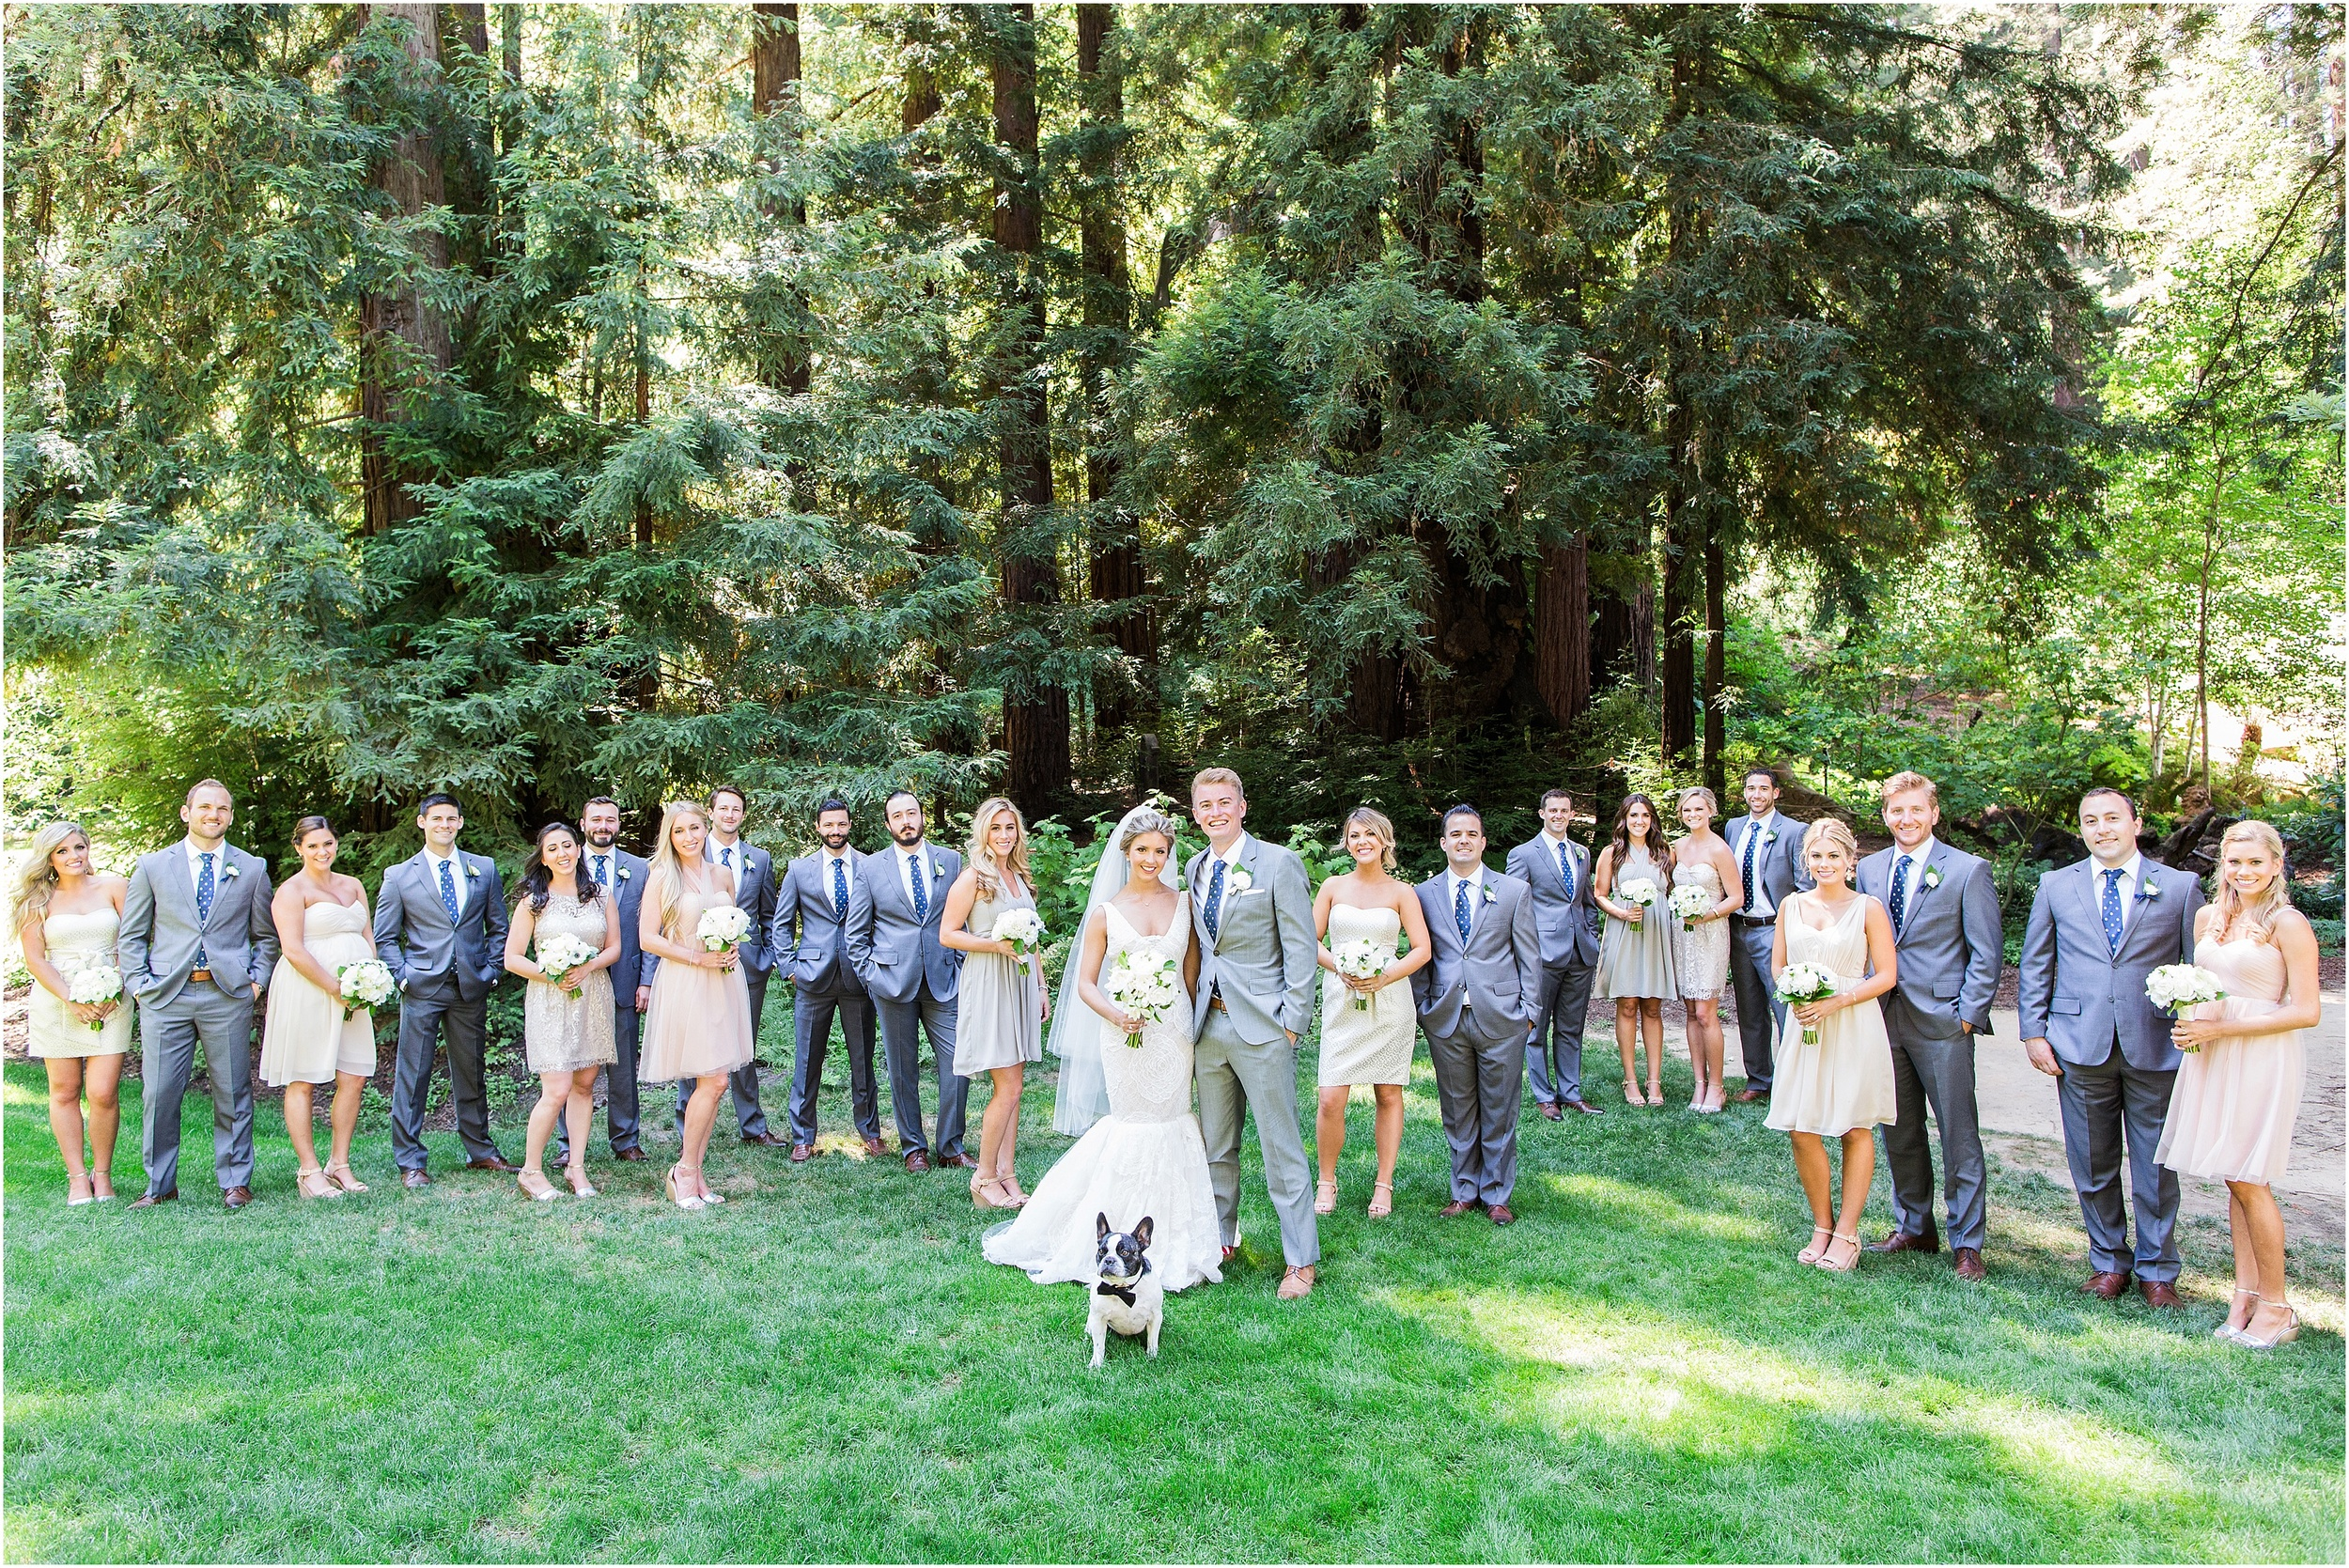 Nestldown_Rustic_Summer_Redwoods_Wedding- 020.jpg